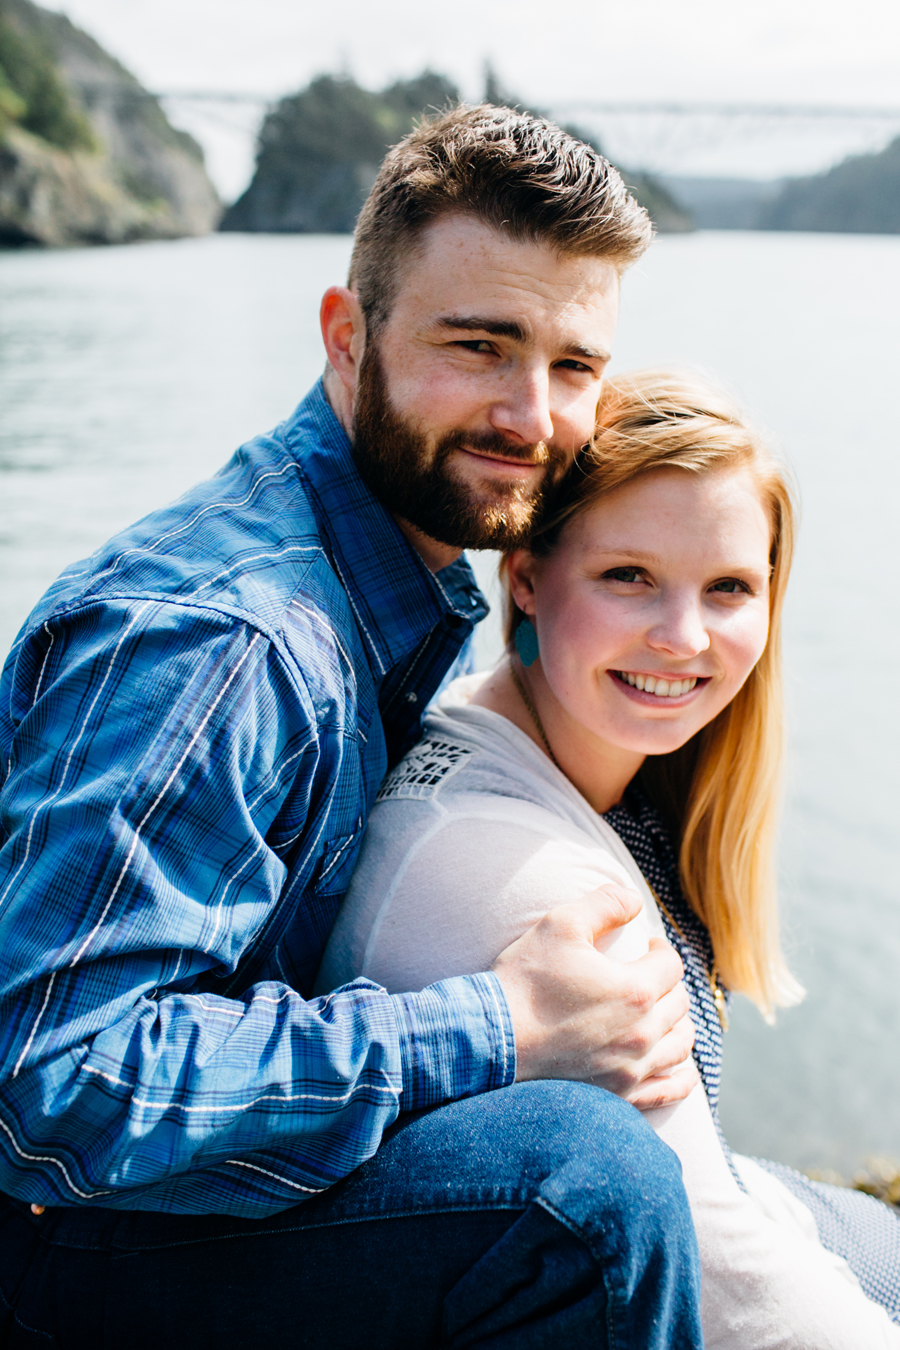 035-bellingham-skagit-engagement-photographer-photo-bowman-bay-jessie.jpg